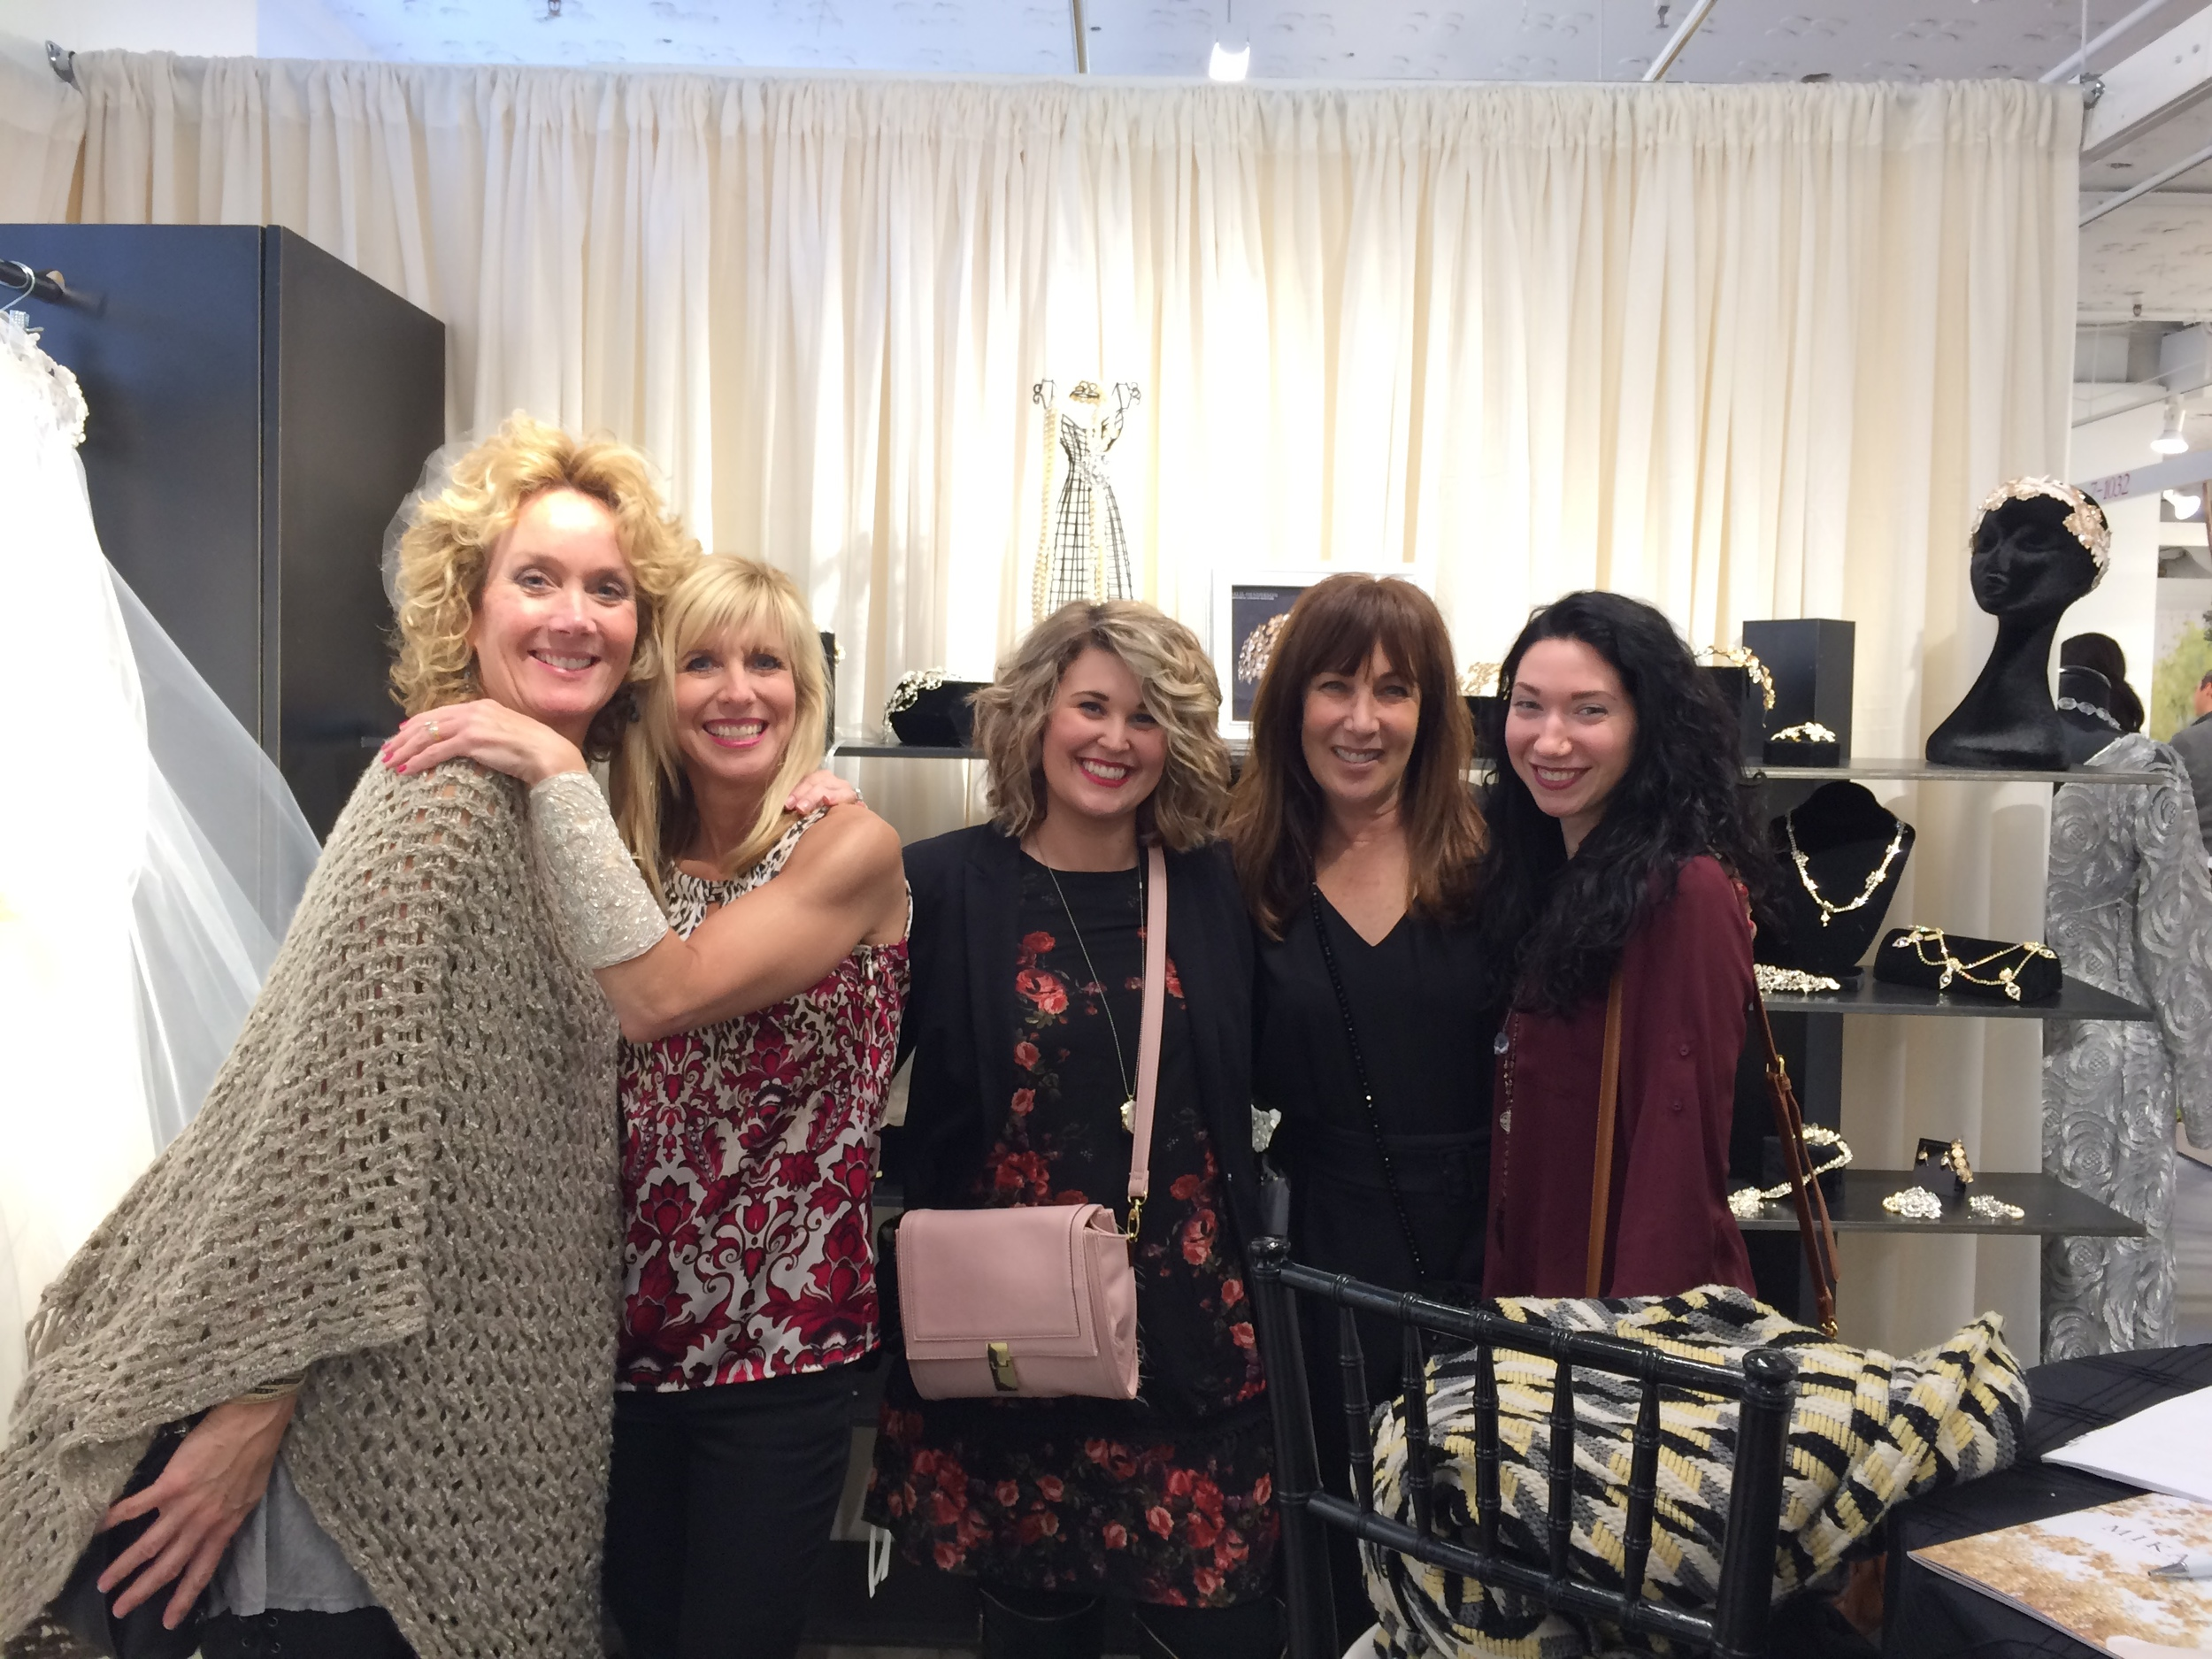 Rebecca (L) and her staff from Rebecca's Bridal Boutique always bring a smile from Louisville KY